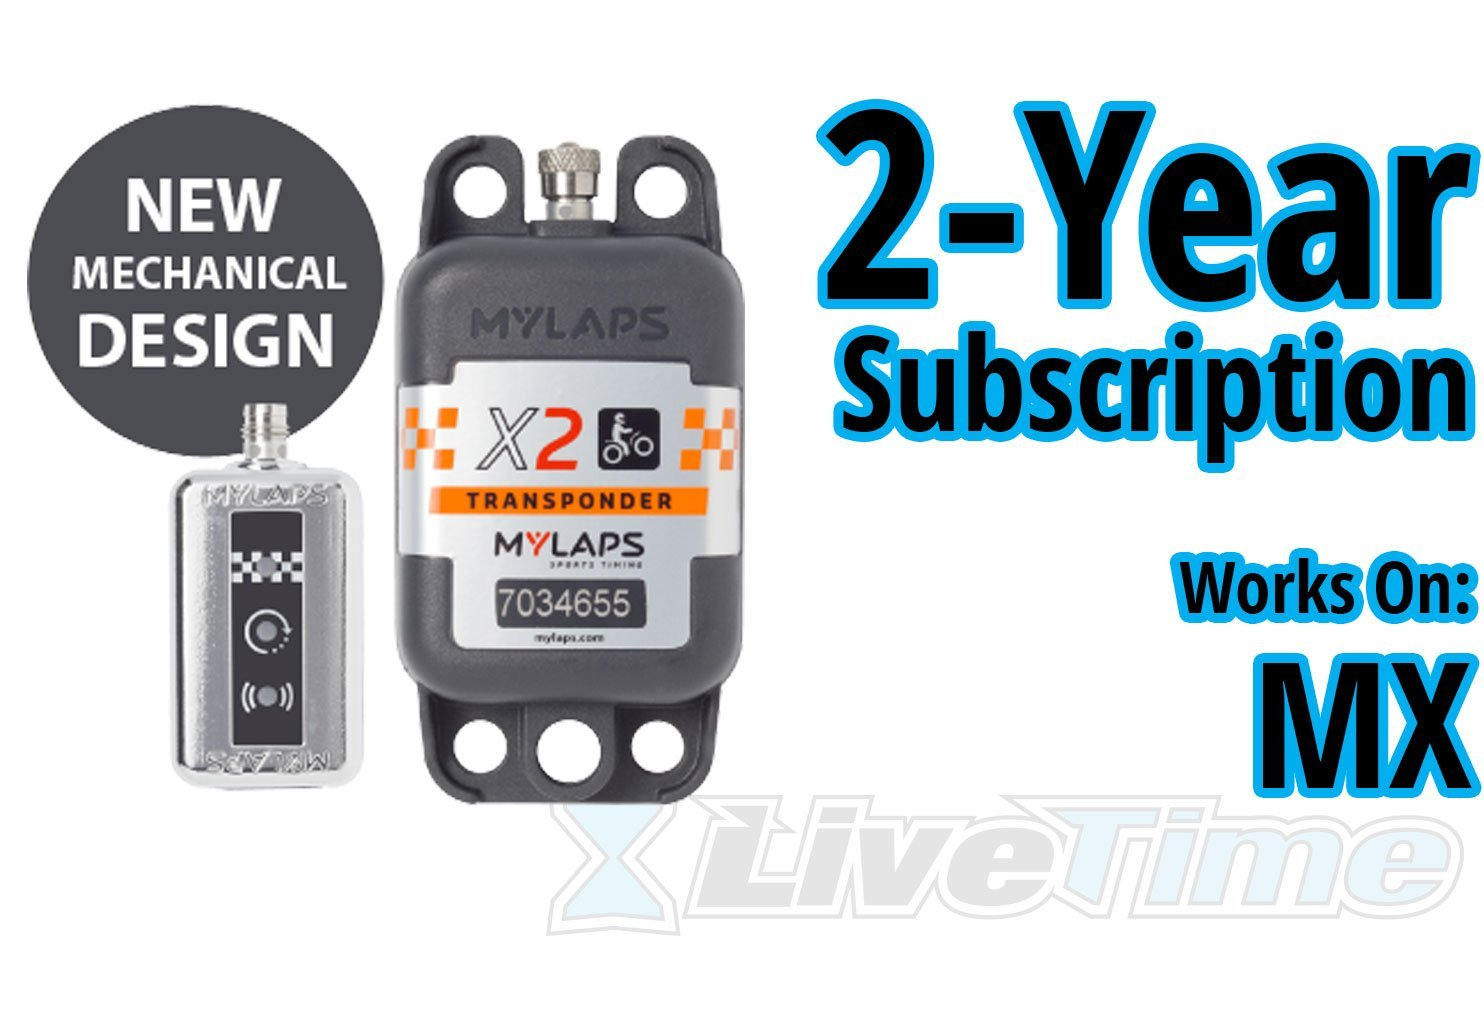 MyLaps X2 Transponder, Rechargeable, for MX (motocross), includes 2-Year Subscription